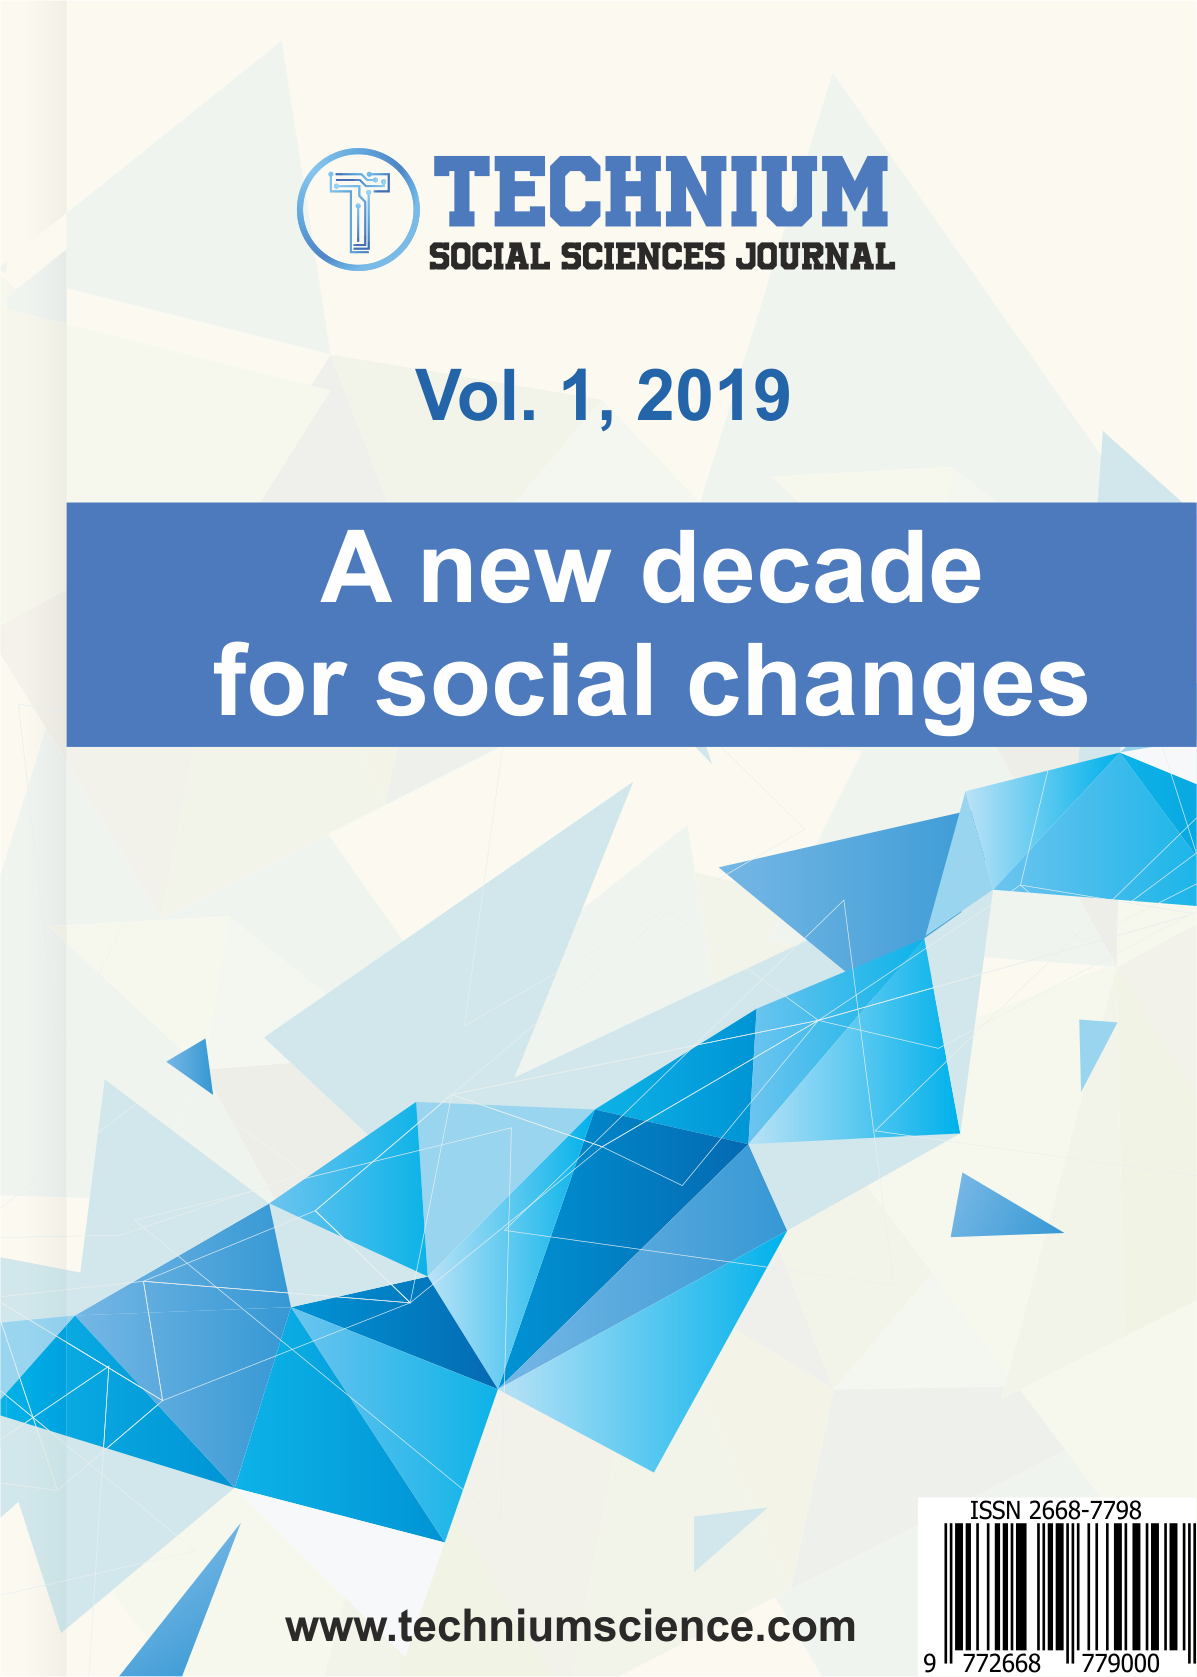 View Vol. 1 (2019): 2020 - A new decade for social changes